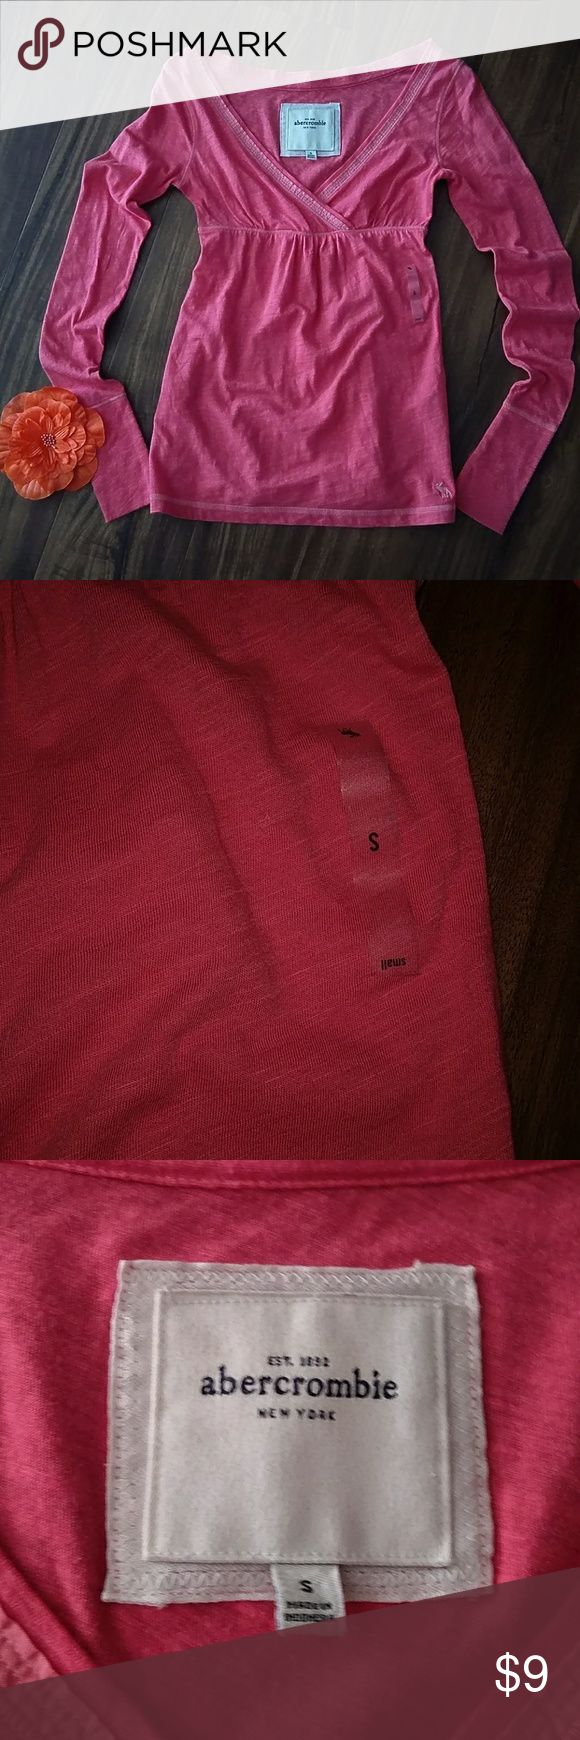 NEW abercrombie girls crossover neckline top This is a new abercrombie girls crossover neckline top in a coral color. Long sleeves. Girls size small. Quick shipping! abercrombie kids Shirts & Tops